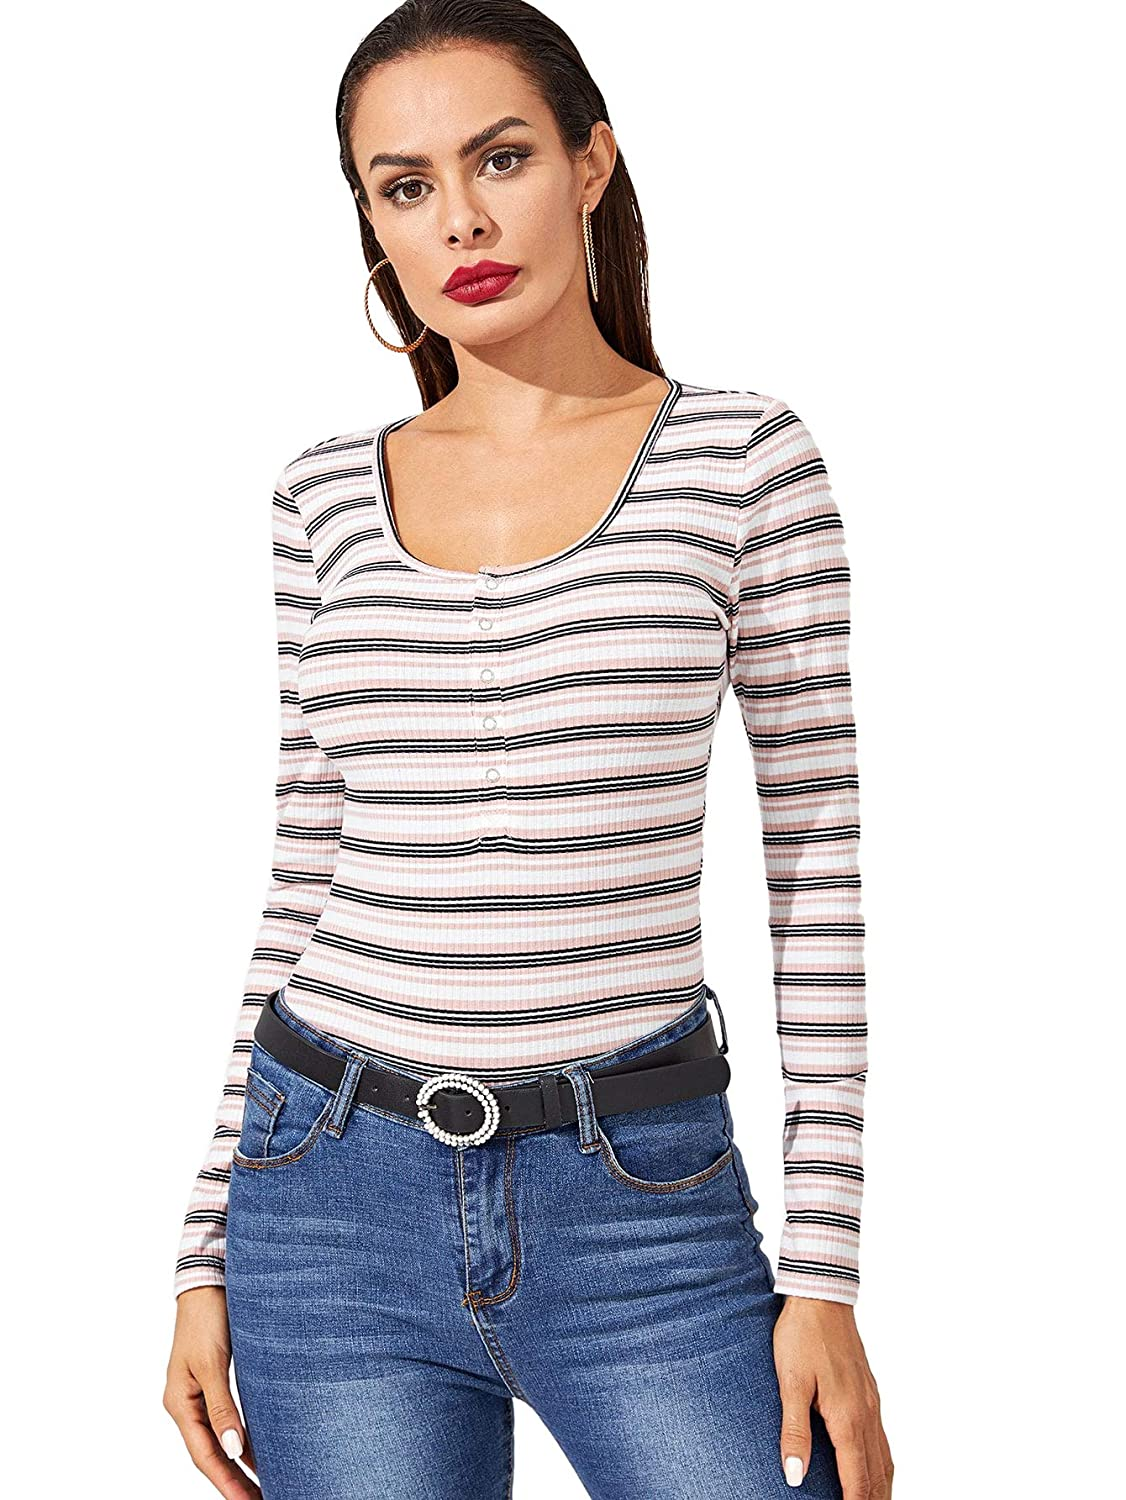 Bmulti1 Milumia Women's Casual Striped Ribbed Tee Knit Crop Top